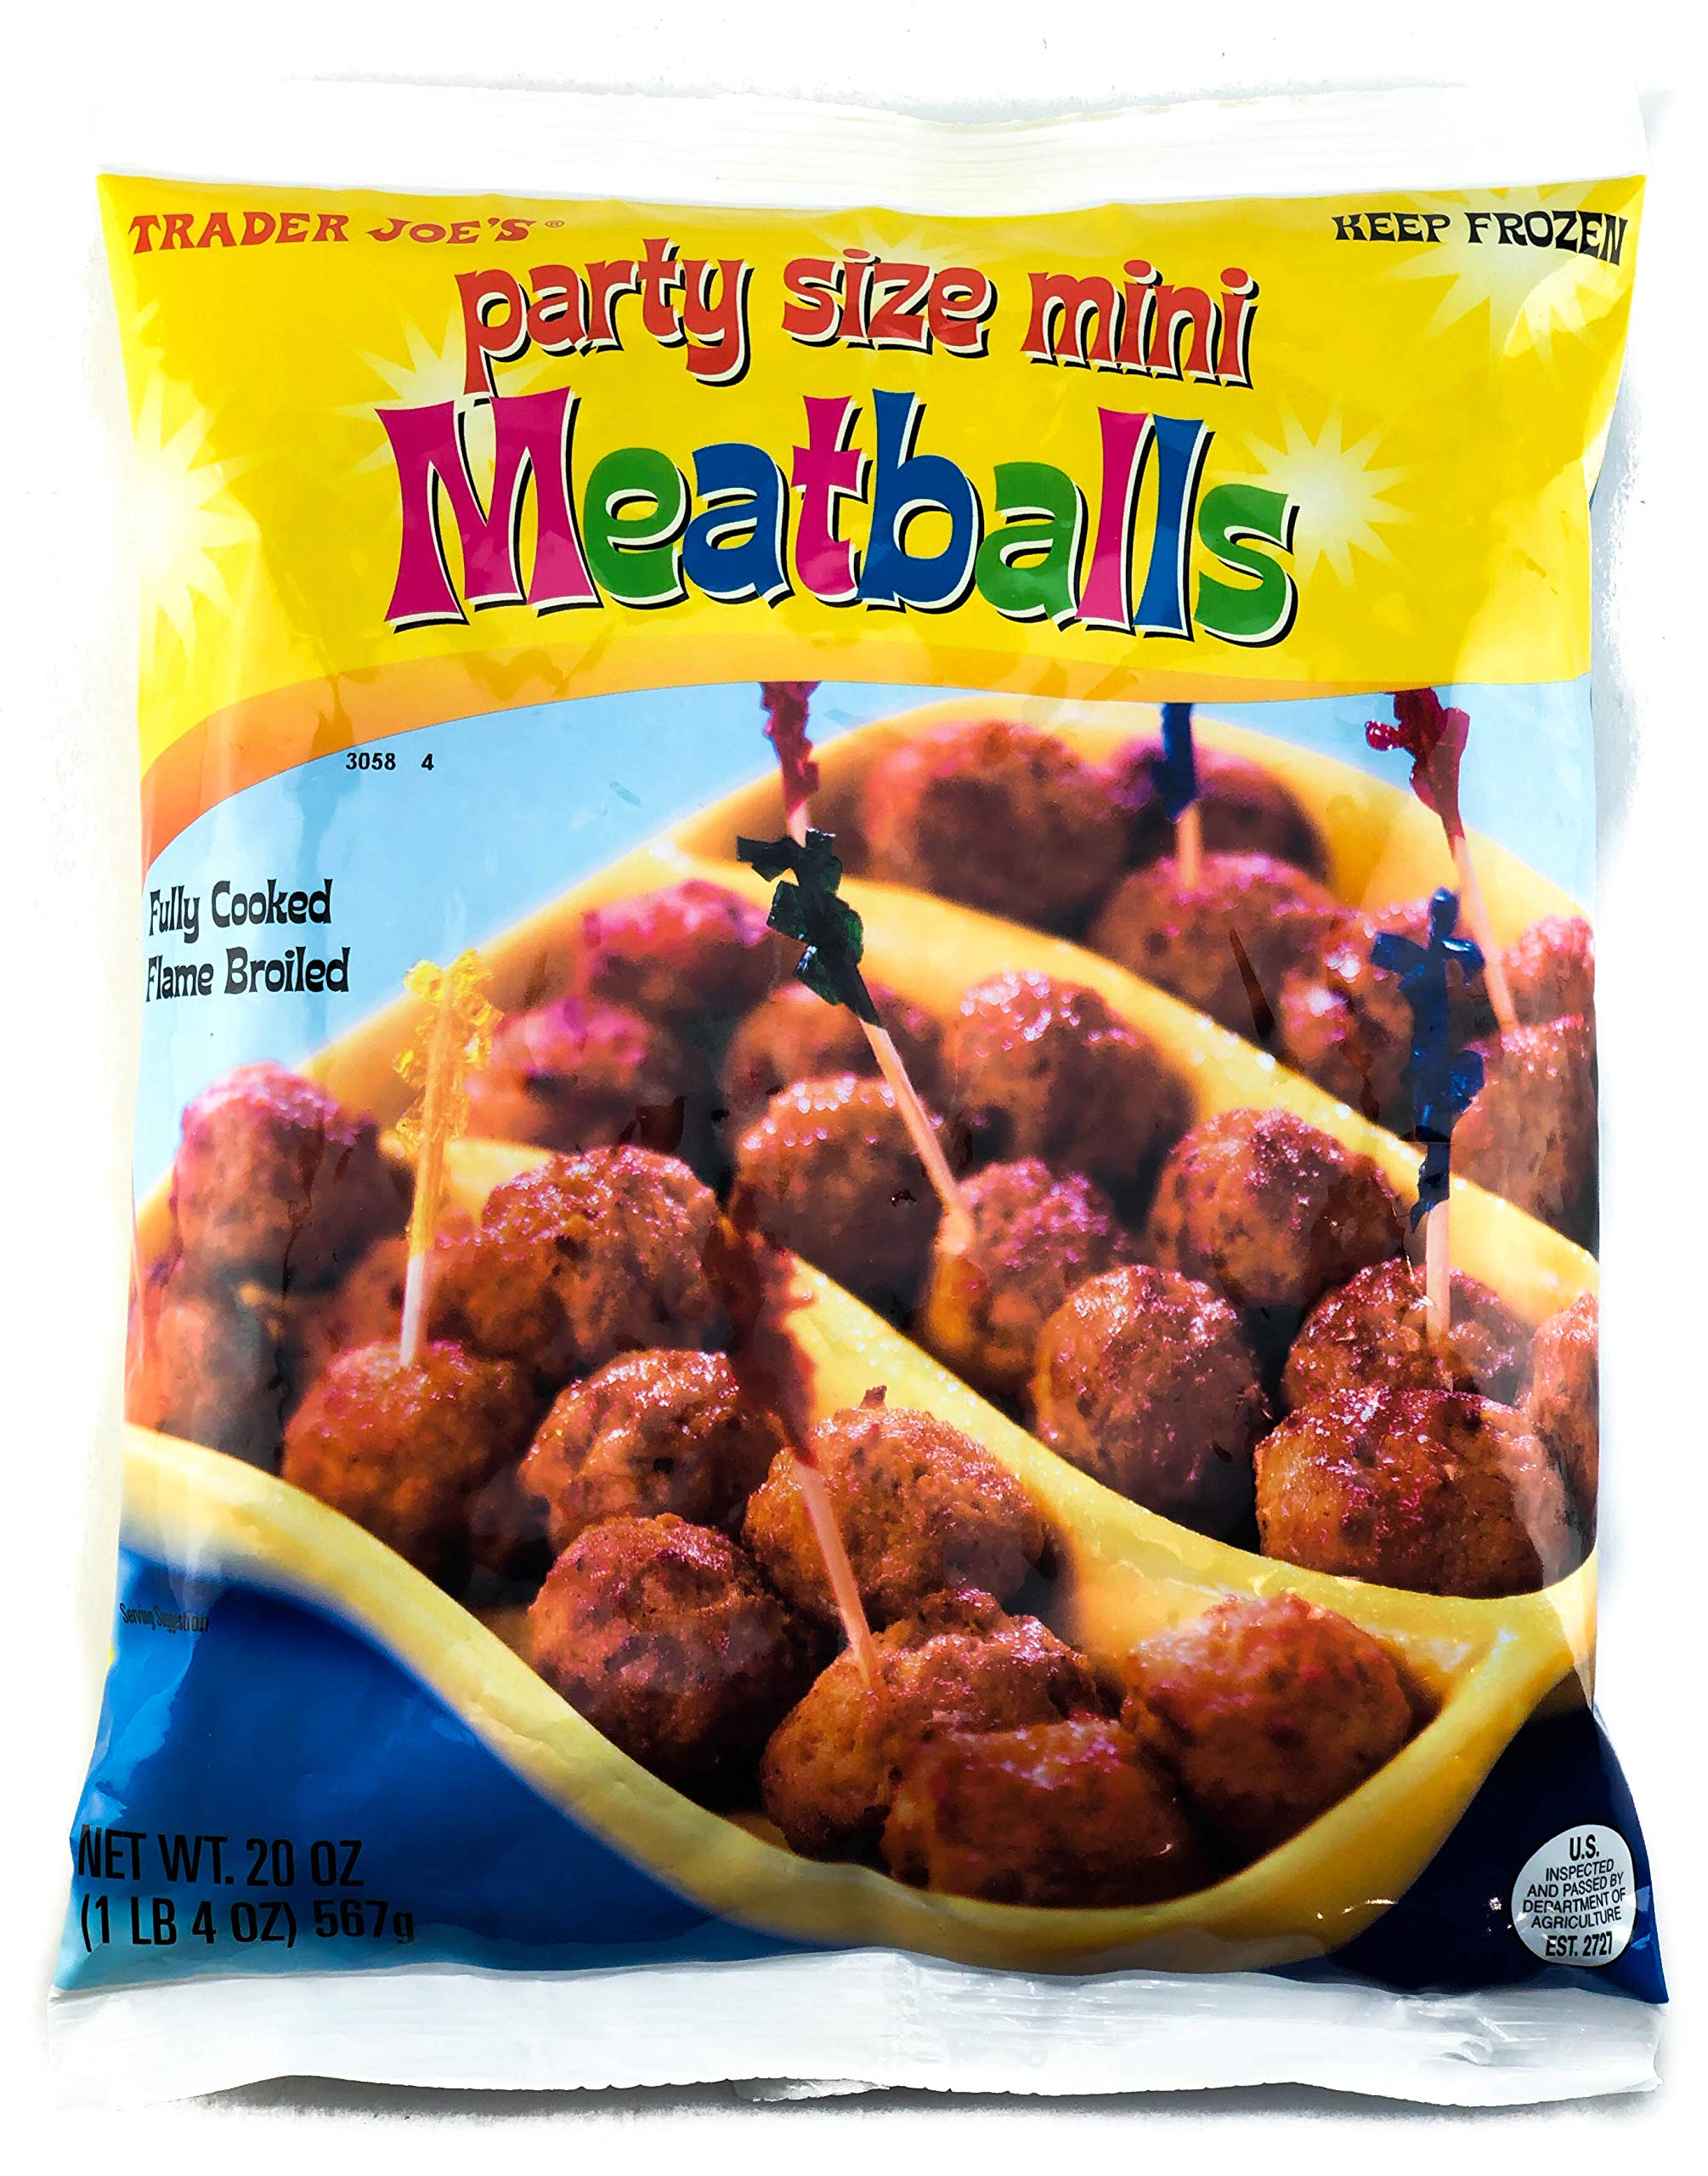 Trader Joe's Party Size Mini Meatballs (4 Pack)